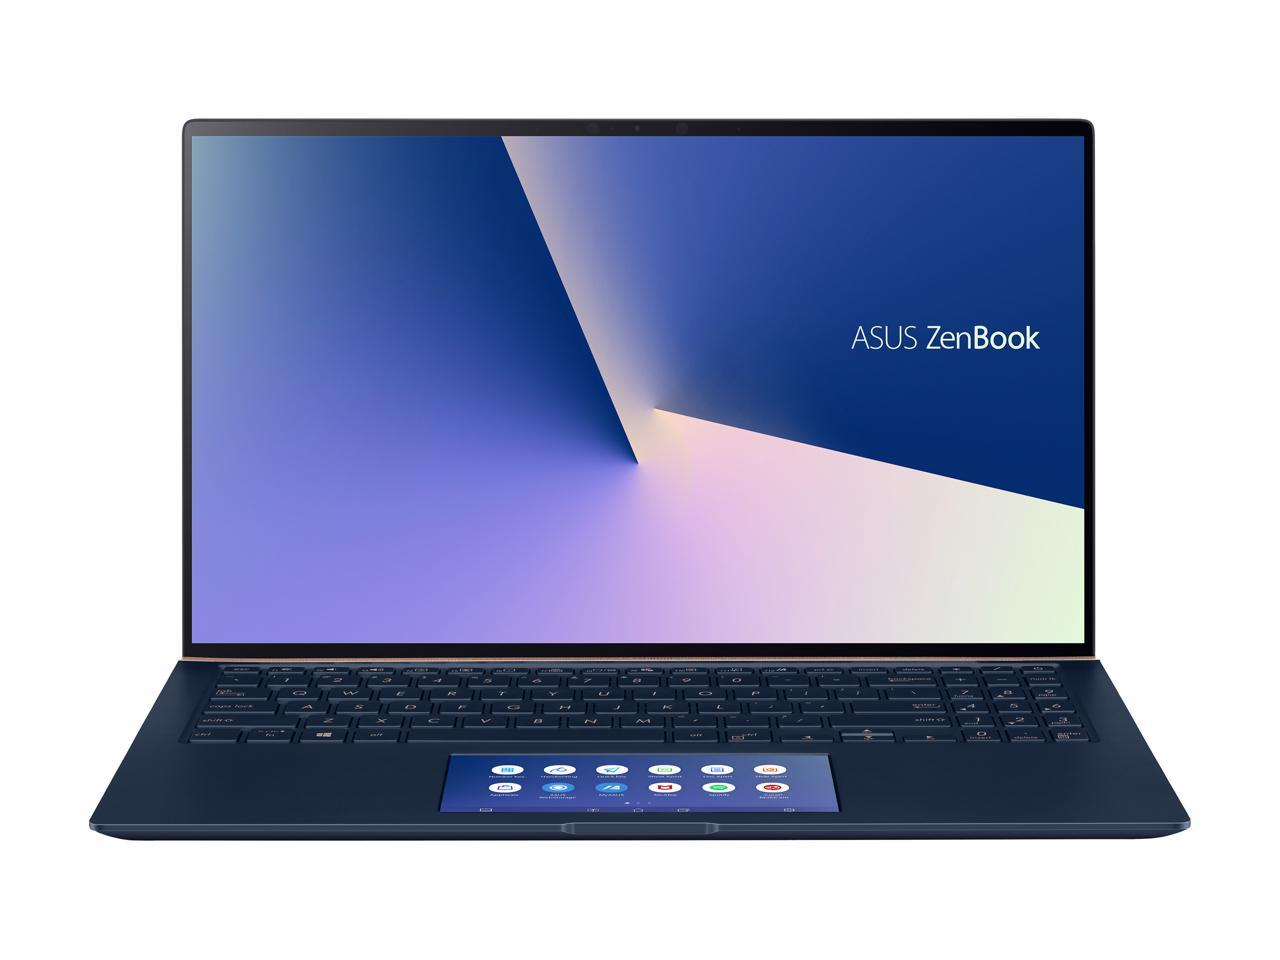 "ASUS ZenBook 15 15.6"" 4K/UHD Intel Core i7-10510U GeForce GTX 1650 Max-Q 16GB RAM 1TB SSD Innovative ScreenPad 2.0 Win 10 Pro UX534FTC-NH77, Royal Blue"